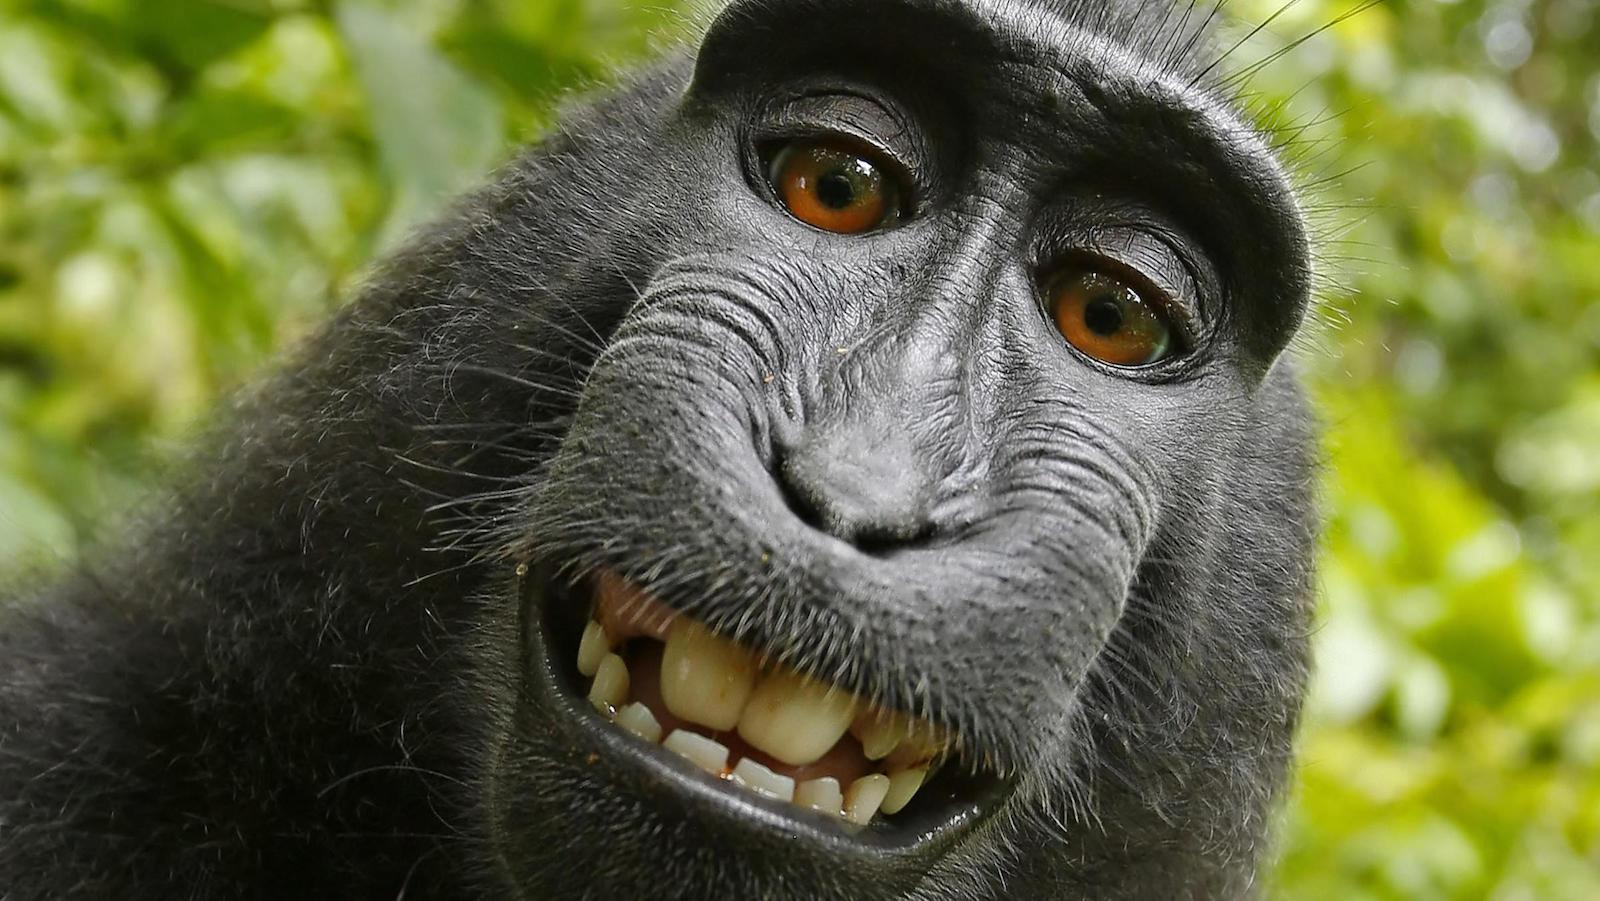 A selfie taken by Naruto, a crested macaque monkey in Indonesia